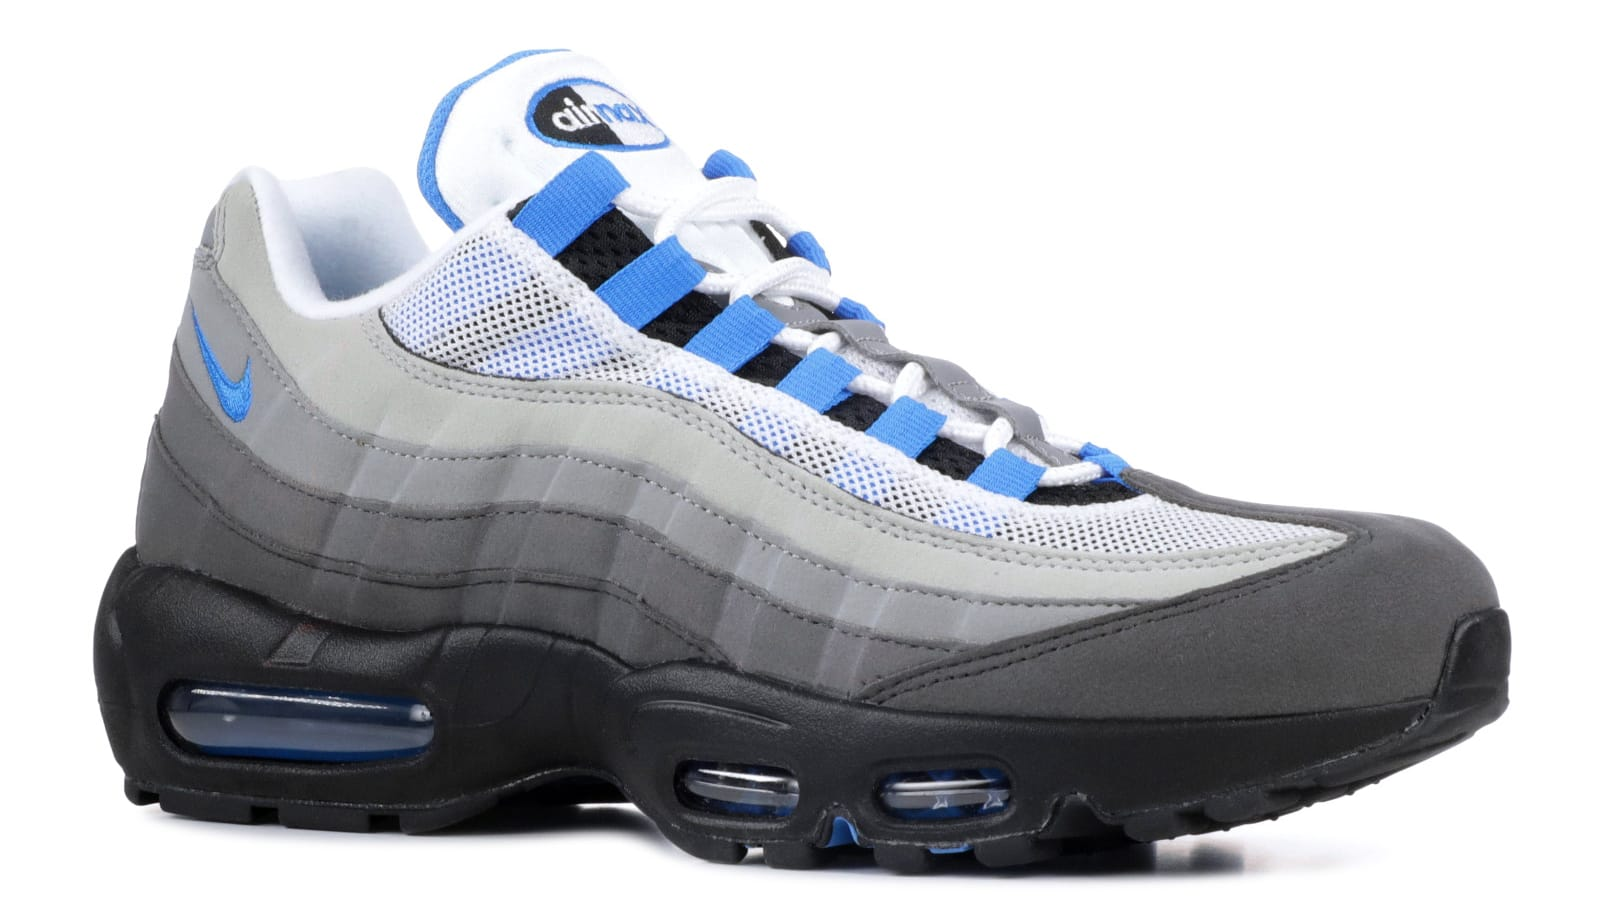 Nike Air Max 95 'Crystal Blue' AT8696 100 Release Date